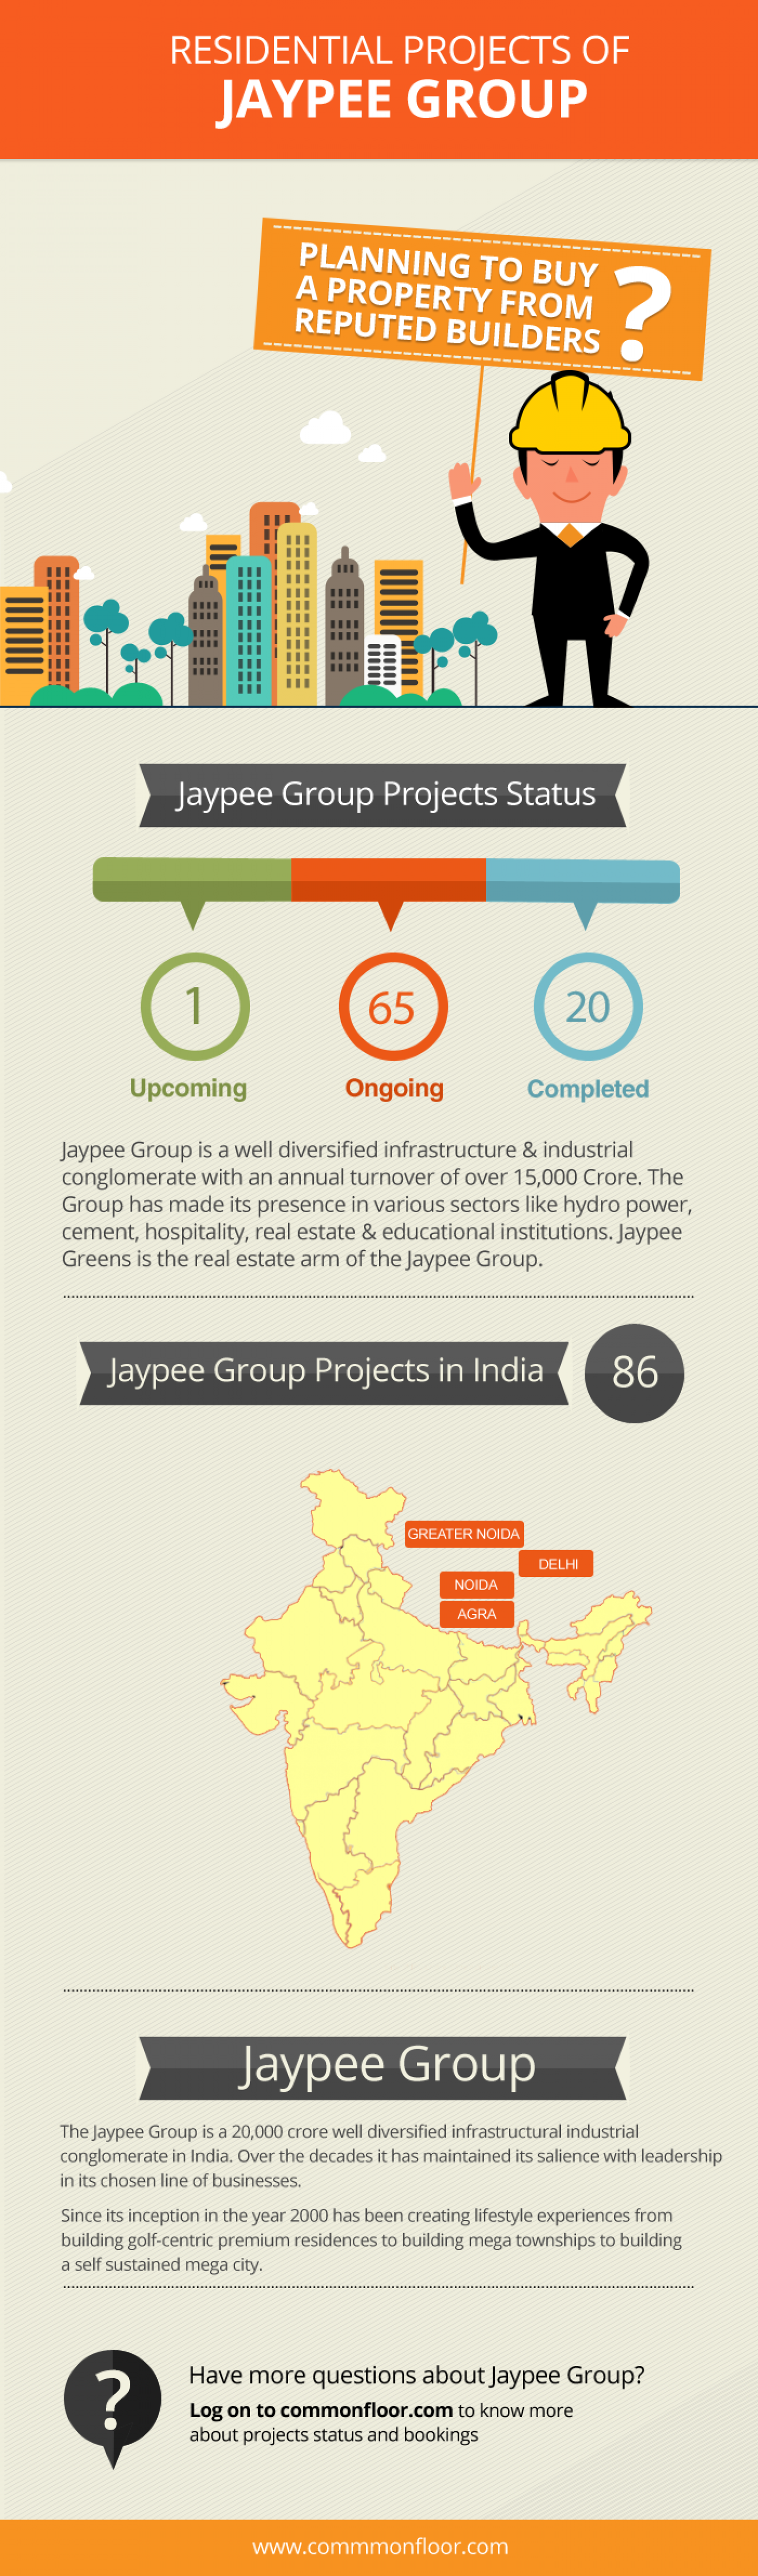 Residential Projects of Jaypee Group Across India Infographic